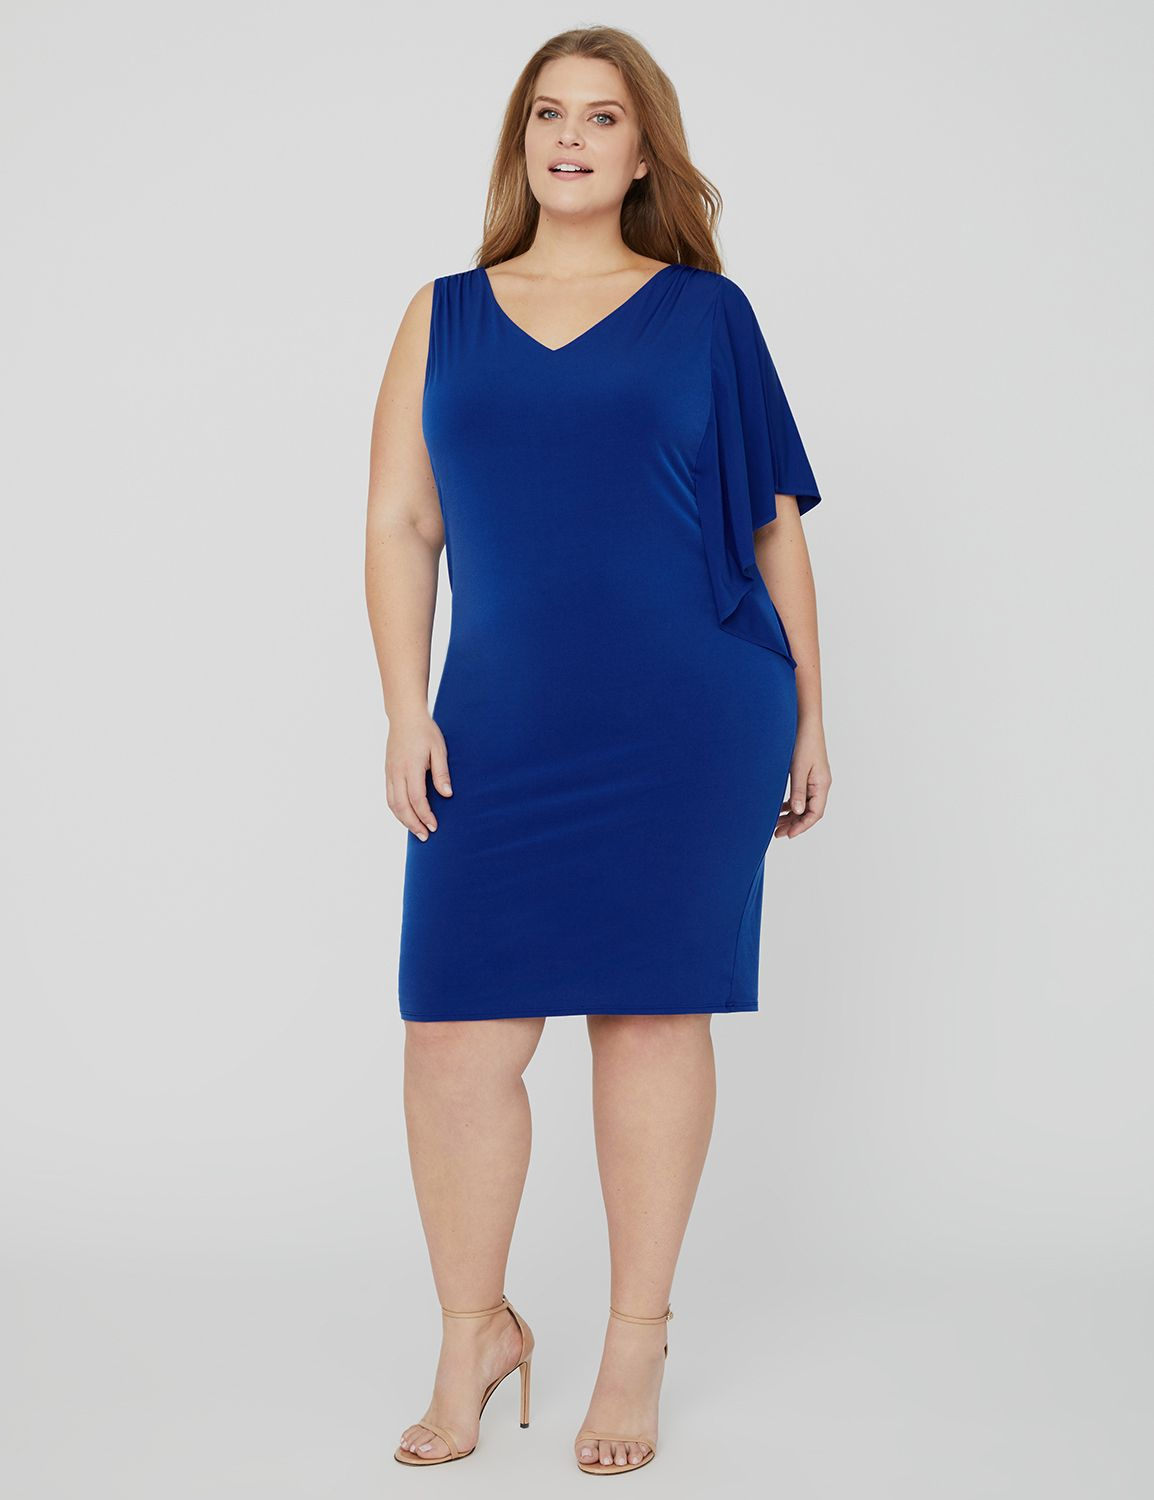 Curvy Collection One-Sleeve Dress 1090273 Curvy Collection ITY Dress MP-300098776